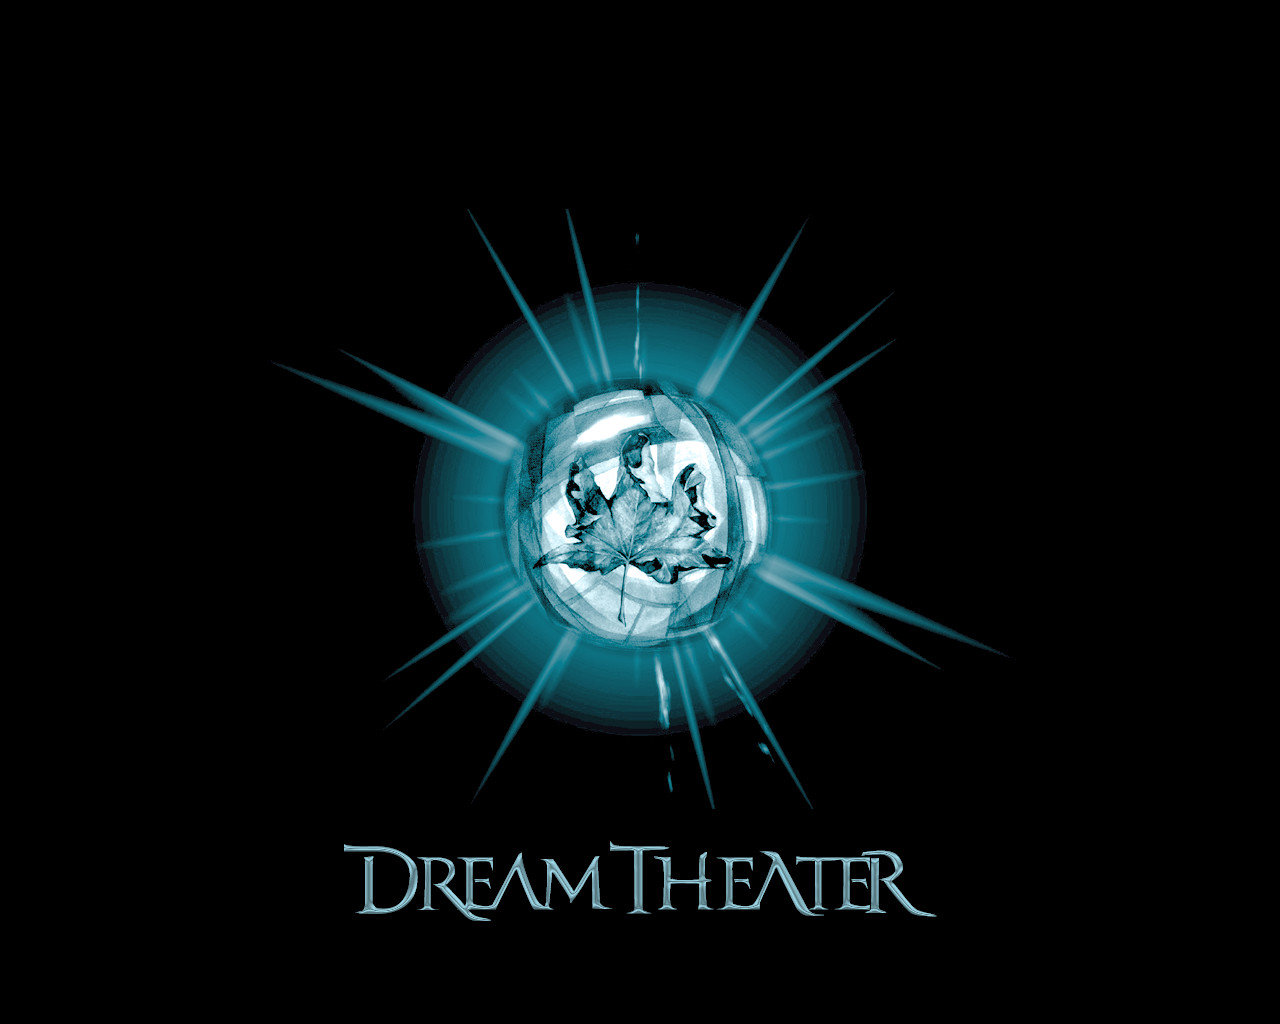 Free Download Dream Theater Wallpaper Id401214 Hd 1280x1024 For Pc